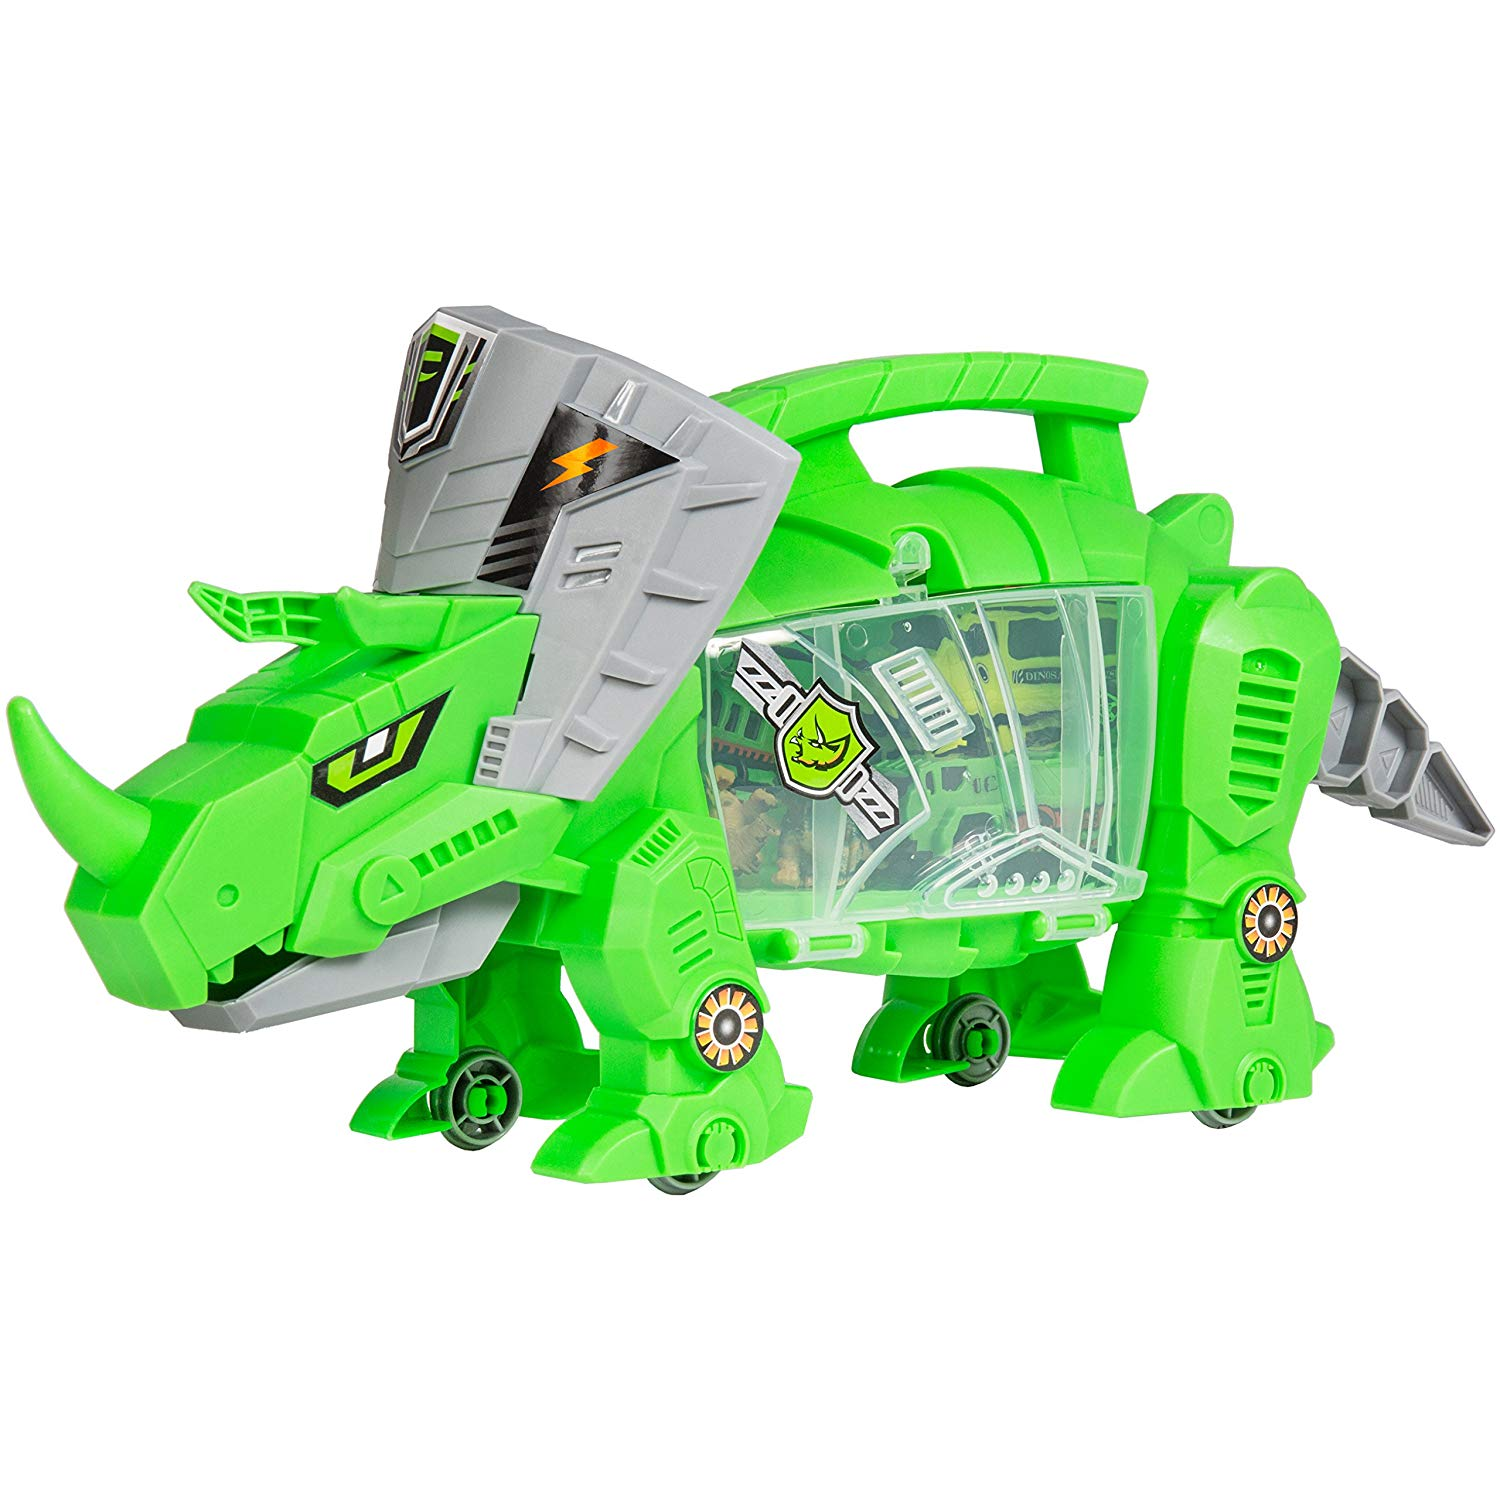 Kids Triceratops Toy Car Carrier Holder w/ Carrying Handle, Wheels, 4 Vehicles, 4 Dinosaurs - Green